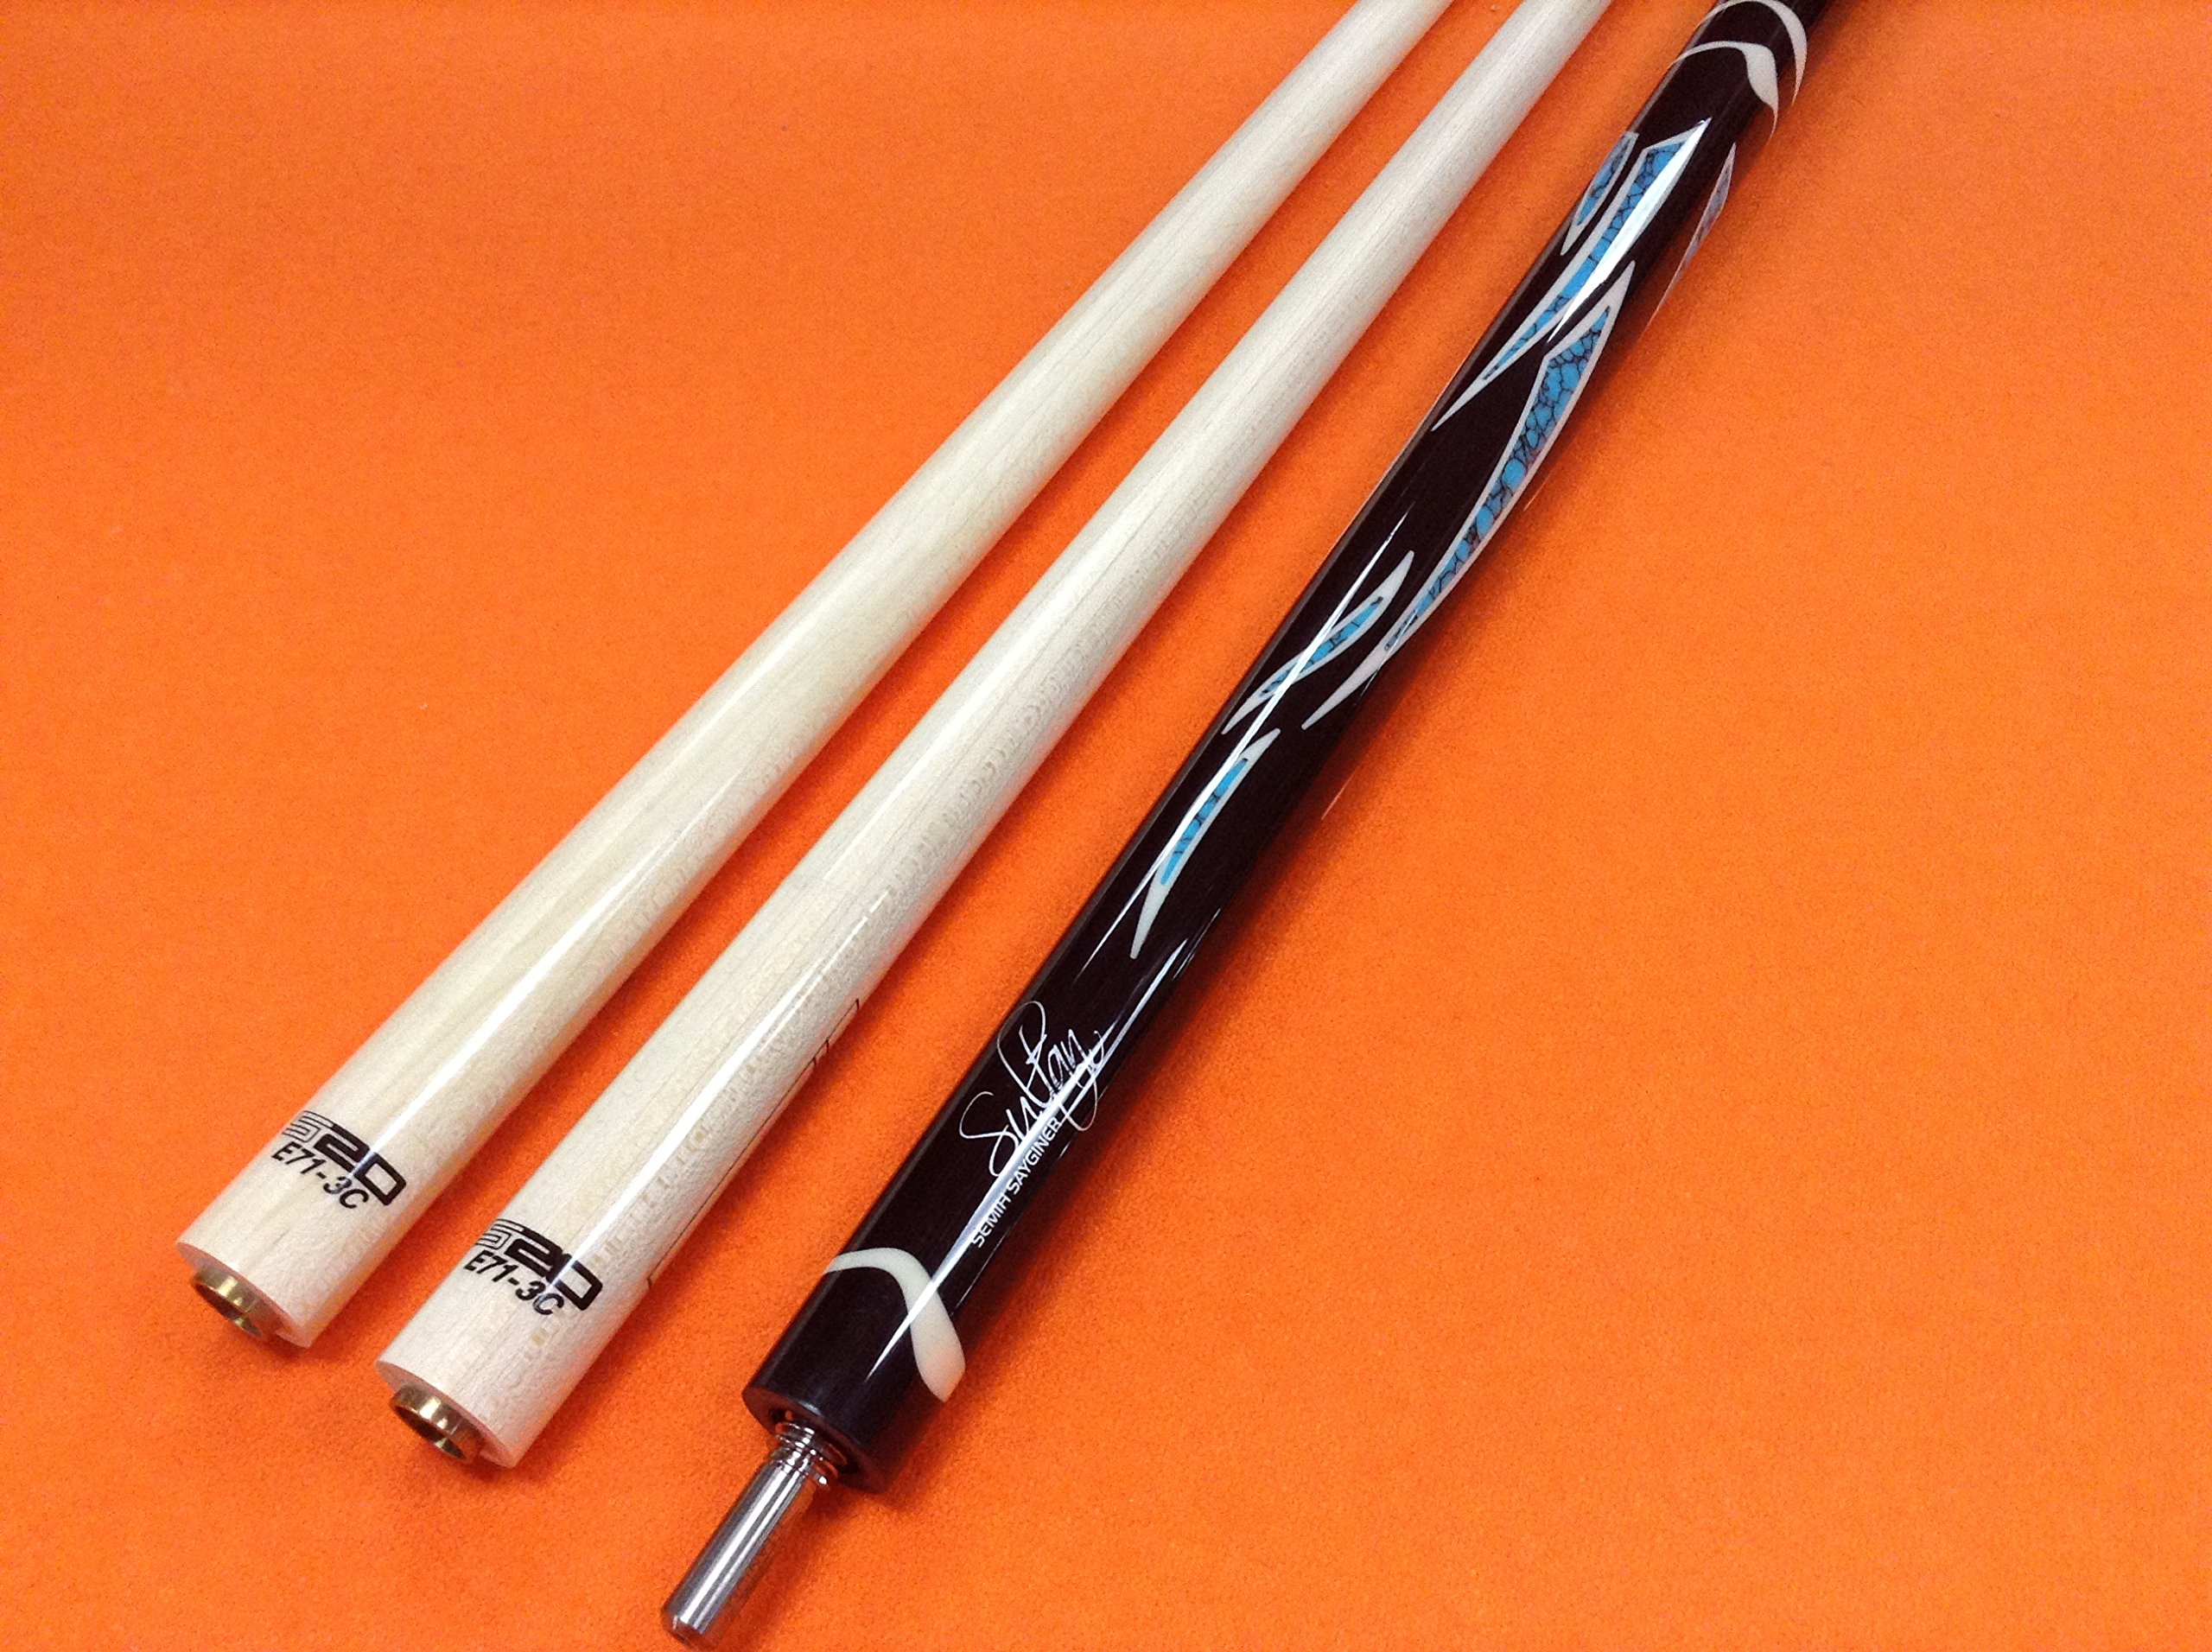 LONGONI CAROM CUE SULTAN WITH S20 SHAFTS